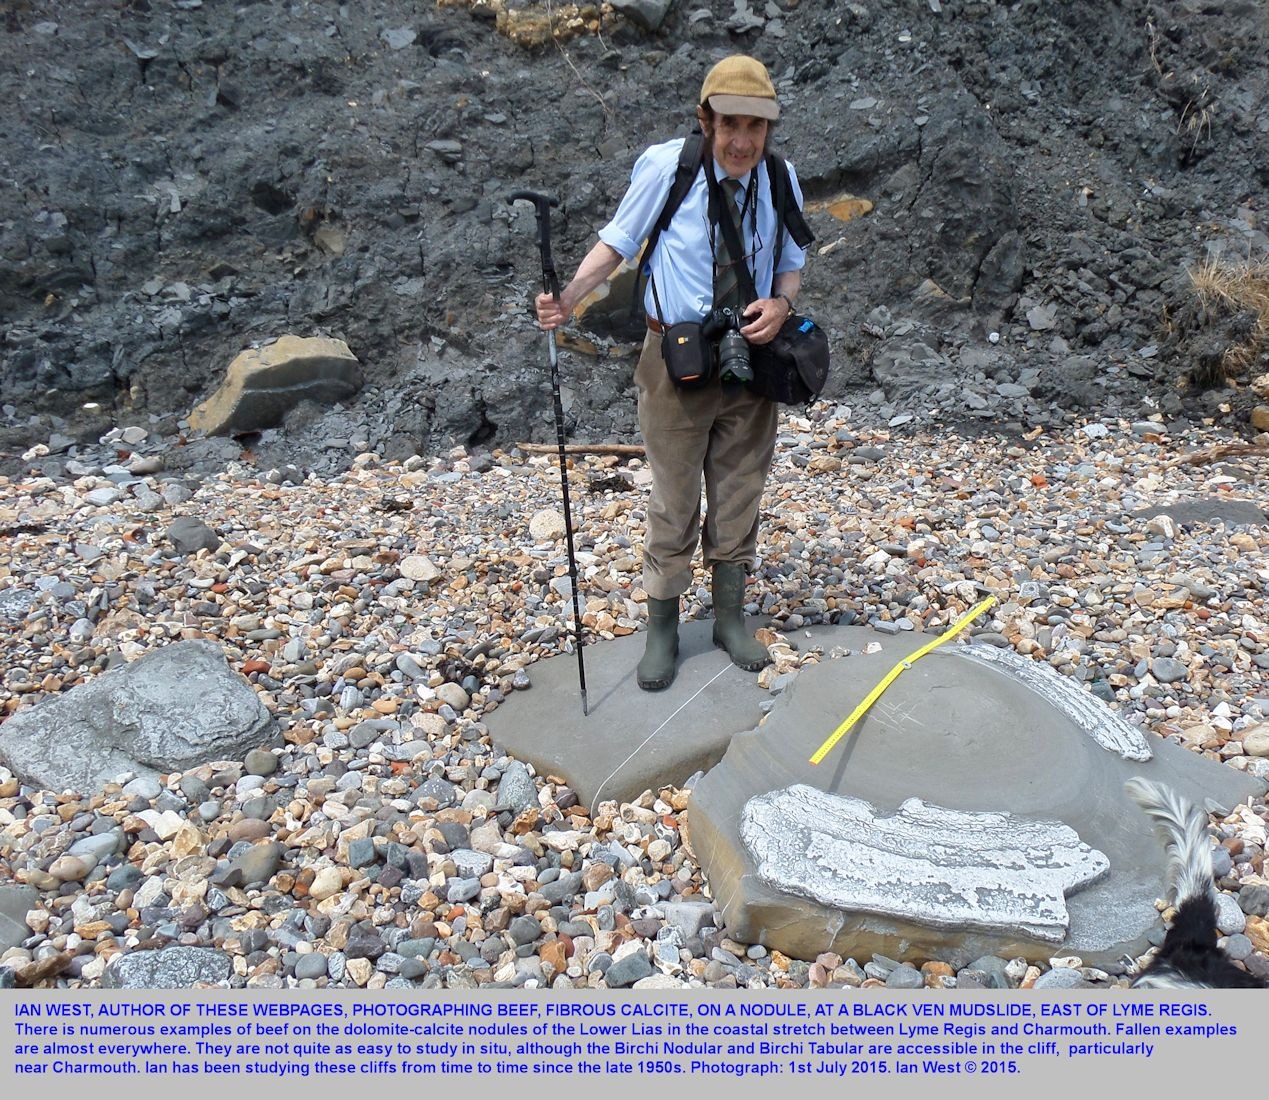 Ian West on the beach at Black Ven, near Lyme Regis, Dorset, photographing beef on a Liassic carbonate nodule, June 2015